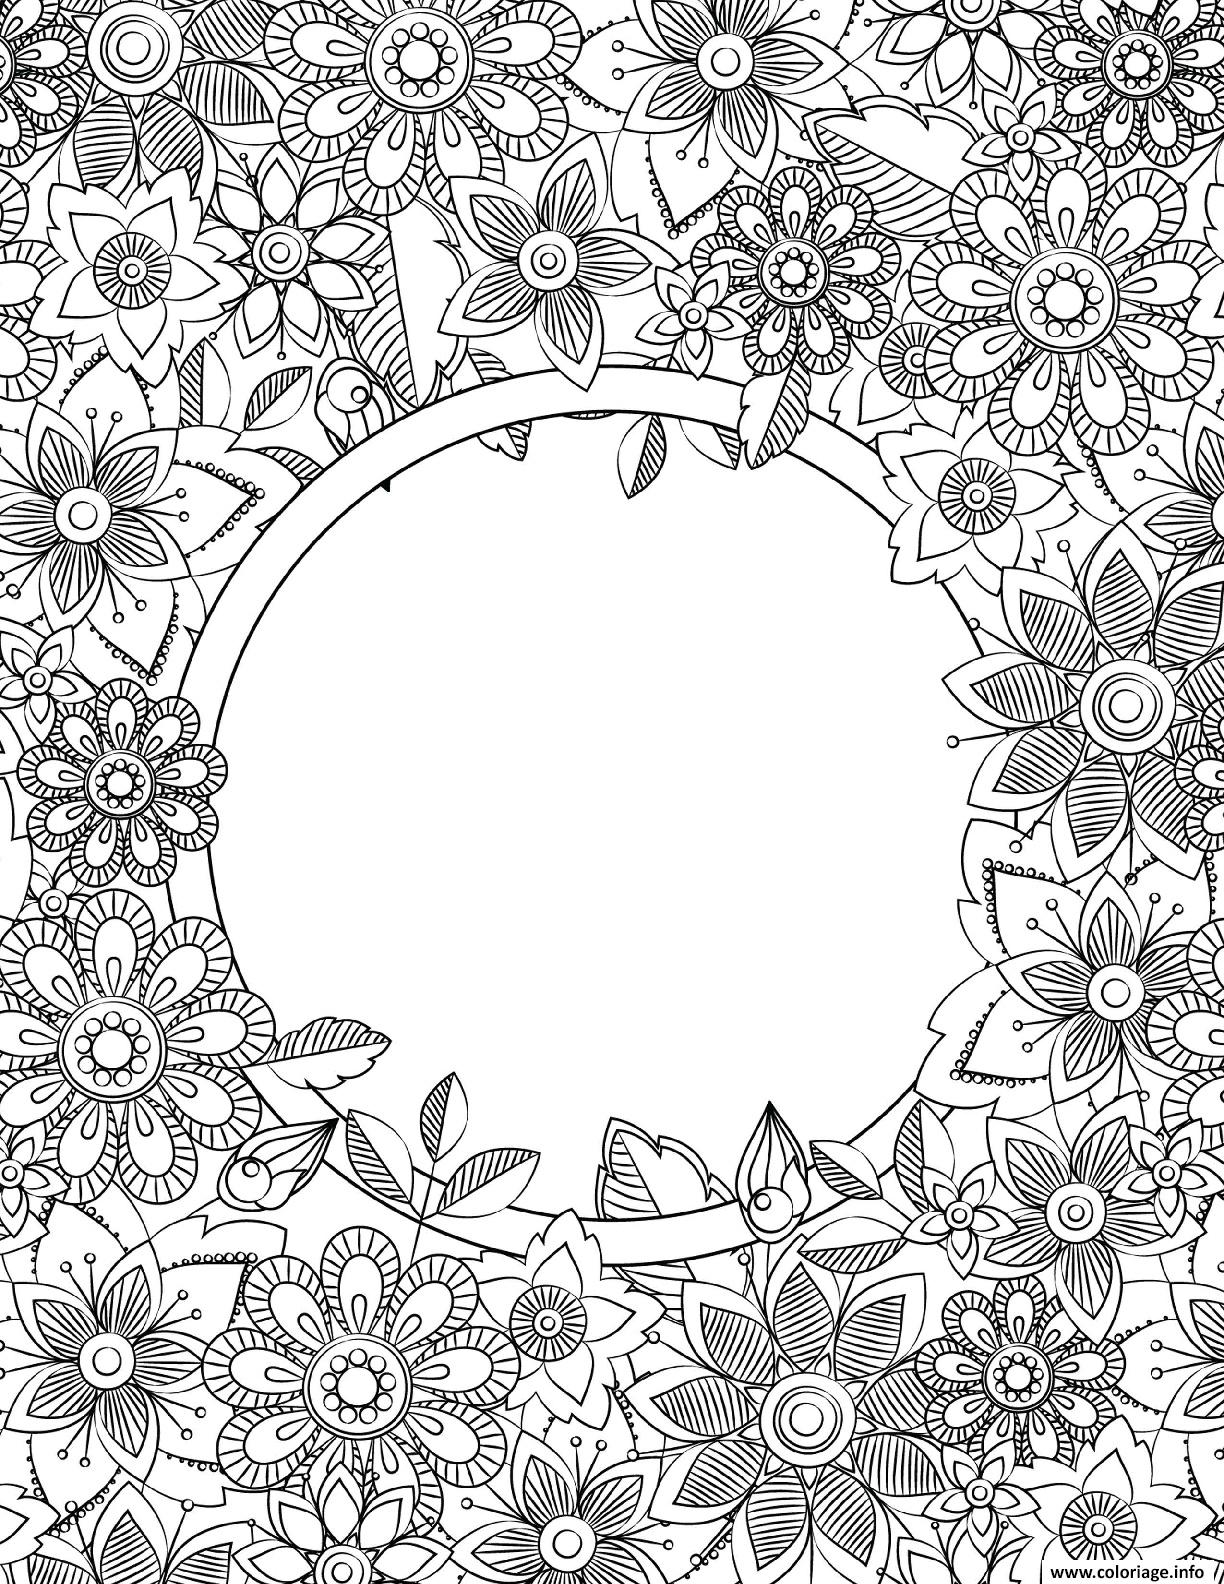 Dessin Binder Cover Adult Flowers Coloriage Gratuit à Imprimer